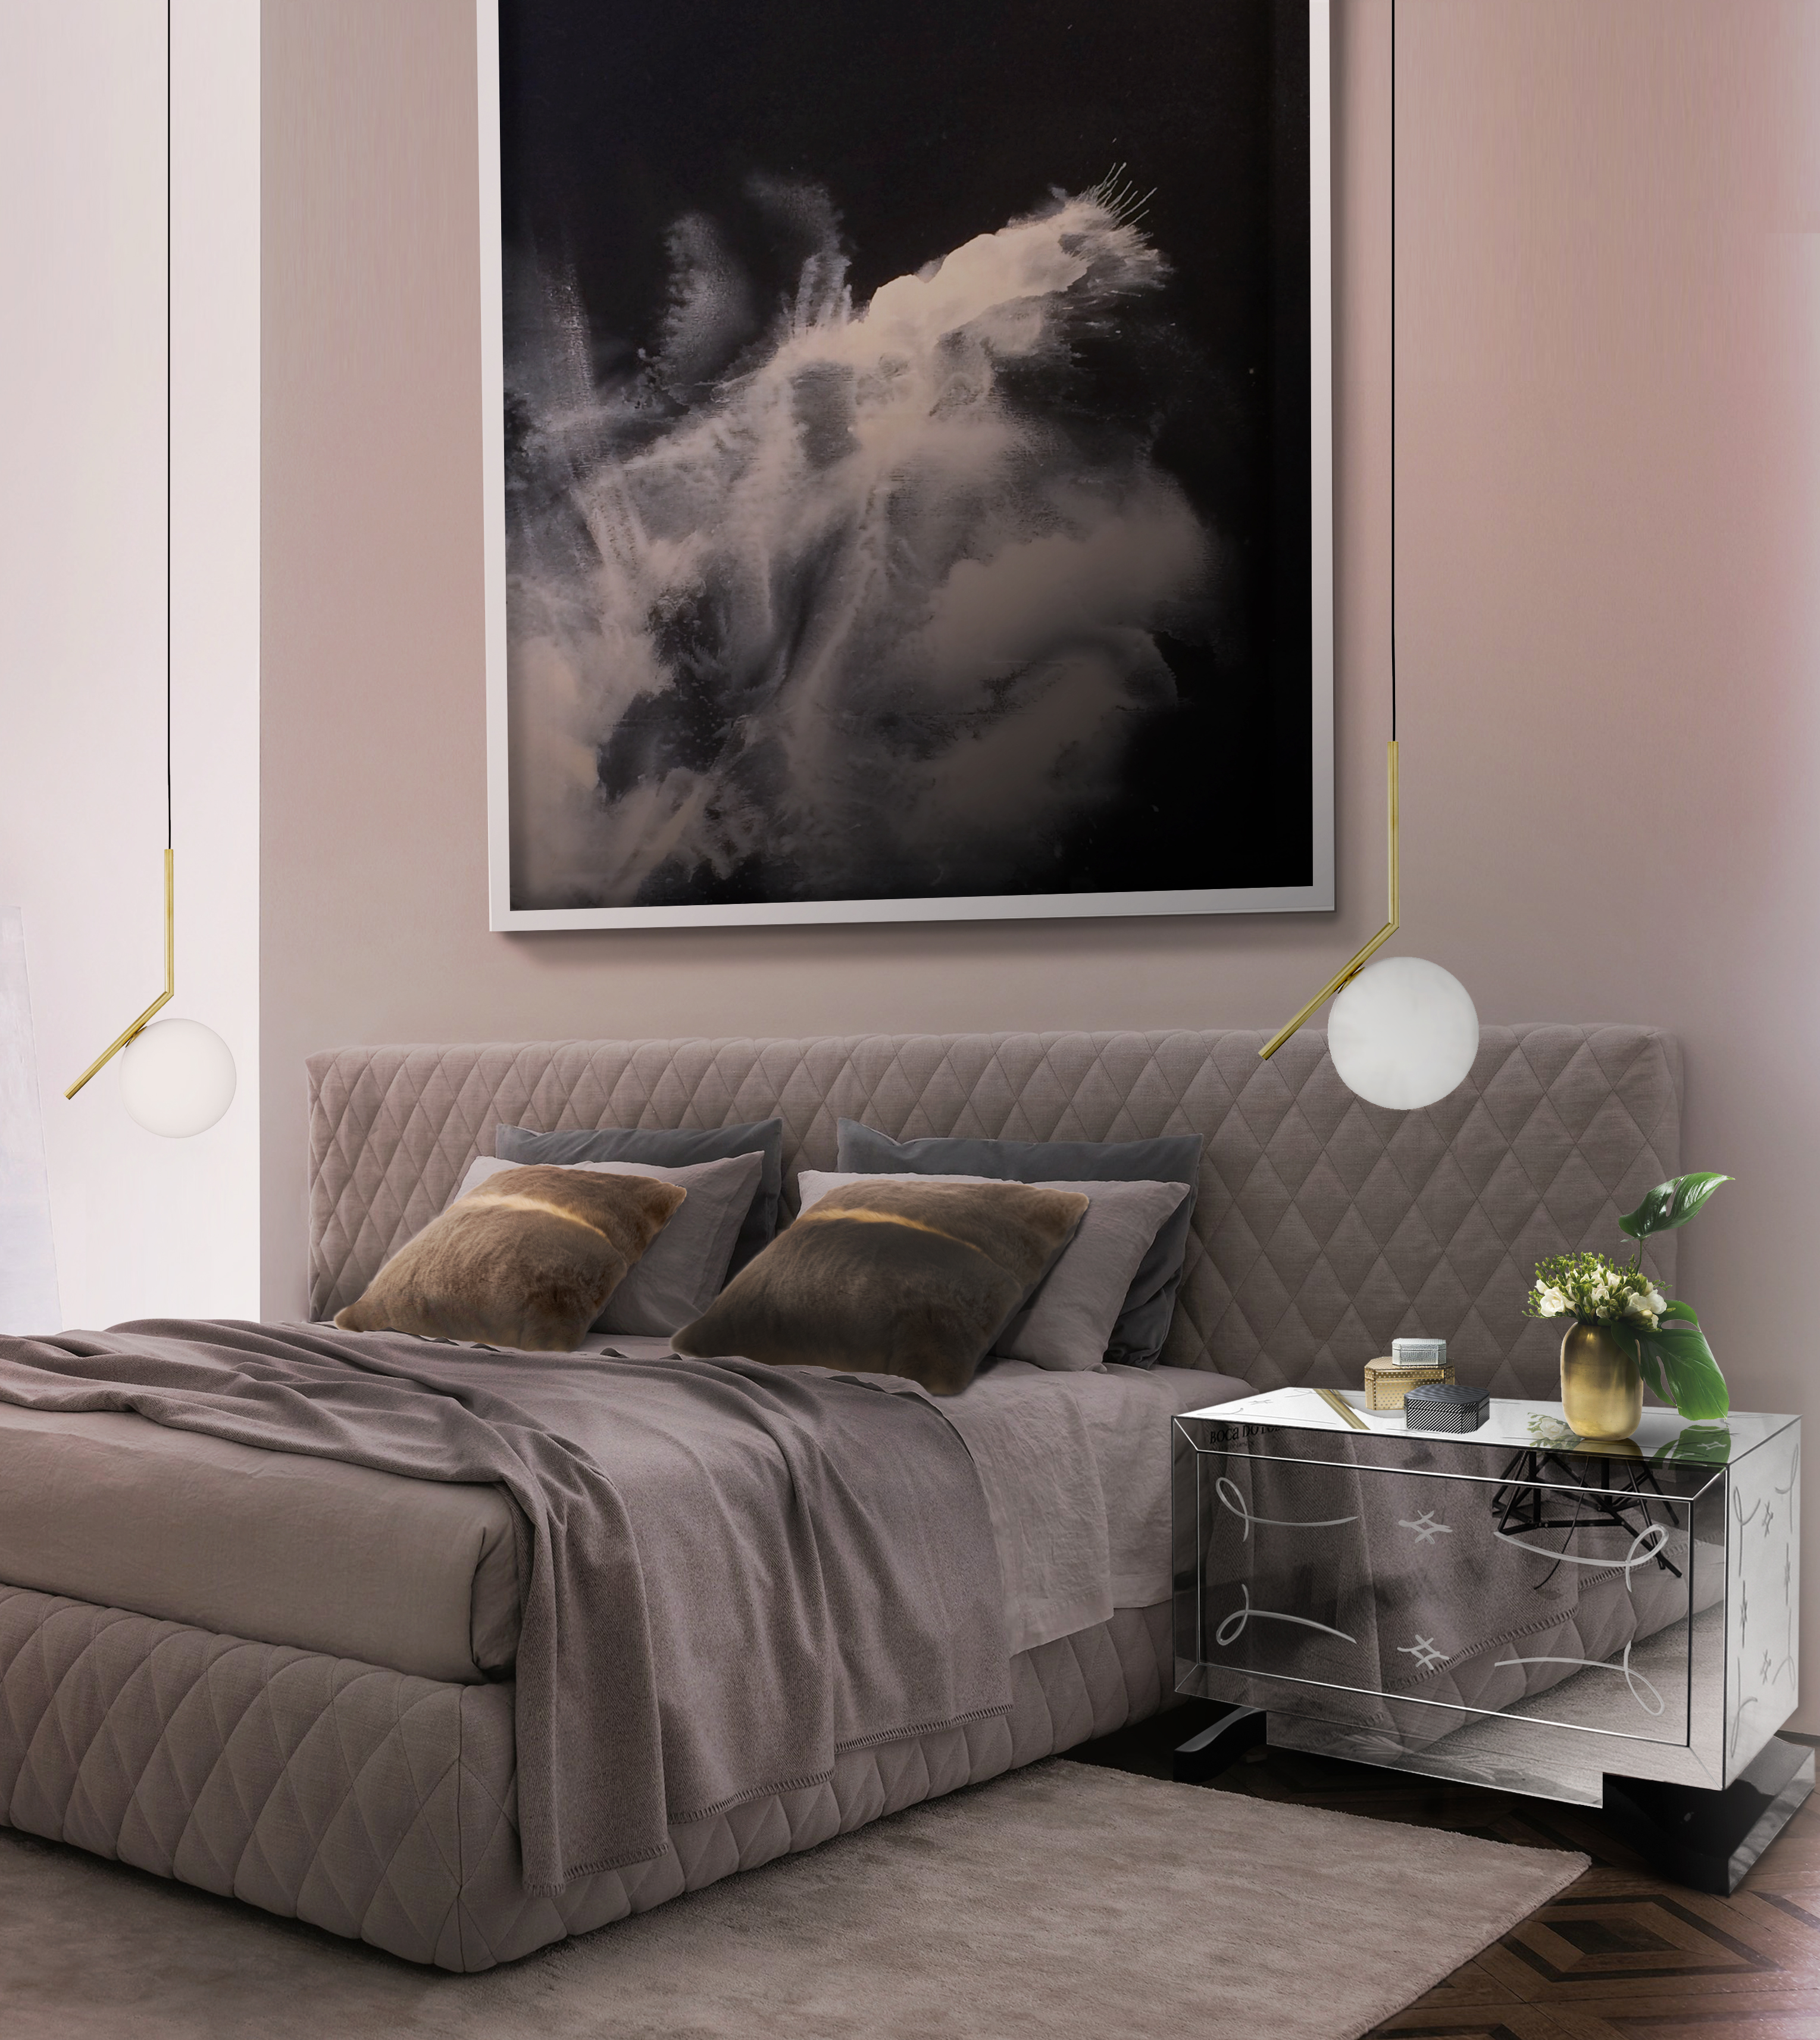 Bedroom Decor Ideas You Will Want to Sleep In bedroom design ideas Bedroom Design Ideas You Will Want to Sleep In Bedroom Design Ideas You Will Want to Sleep In 5